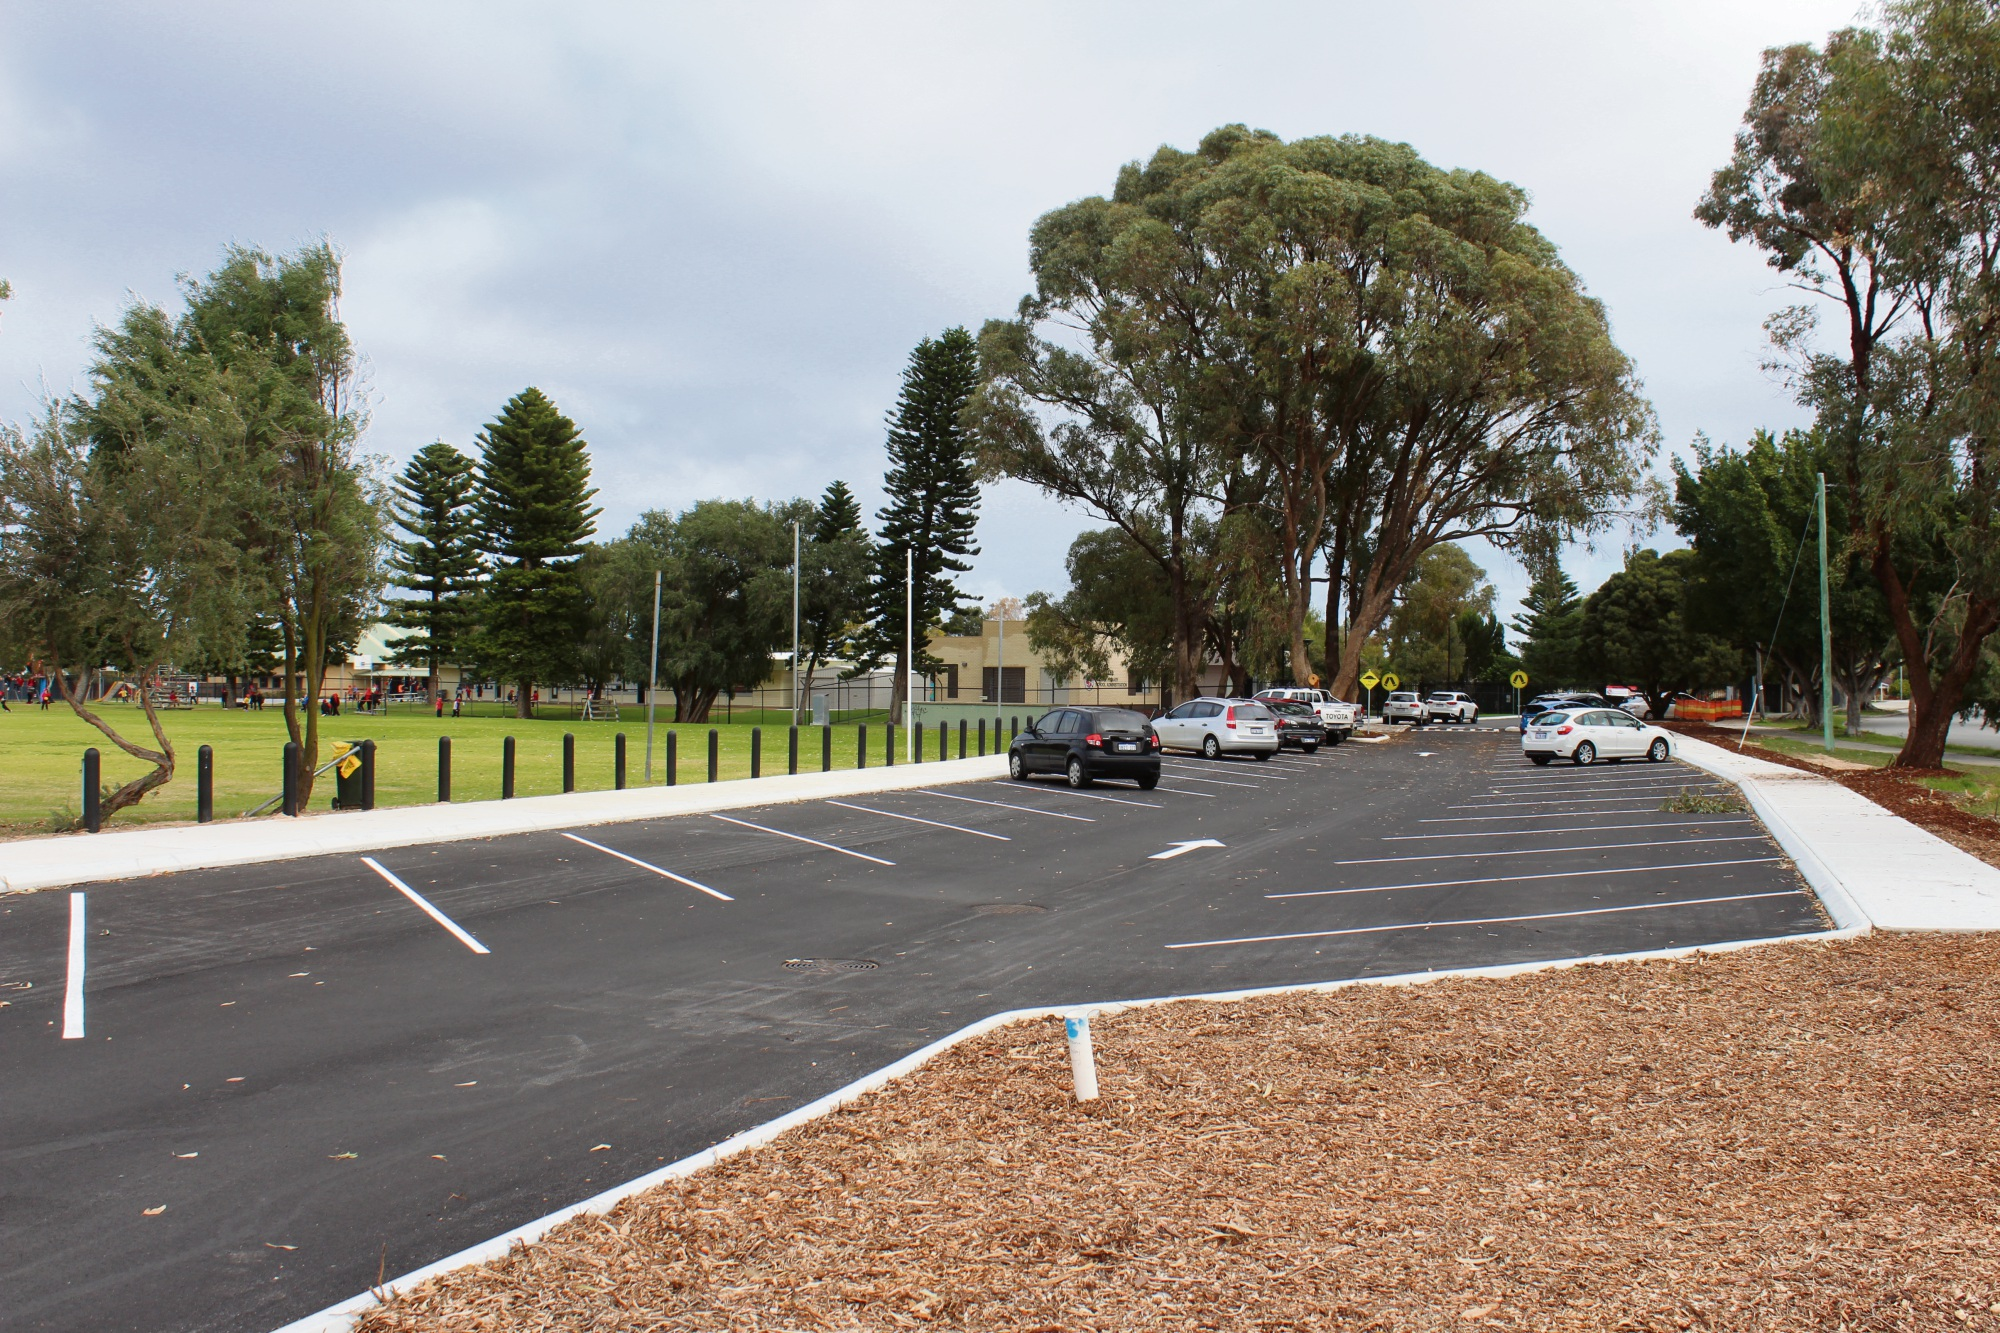 The new car park at the Hillman Primary School will ease parking congestion.